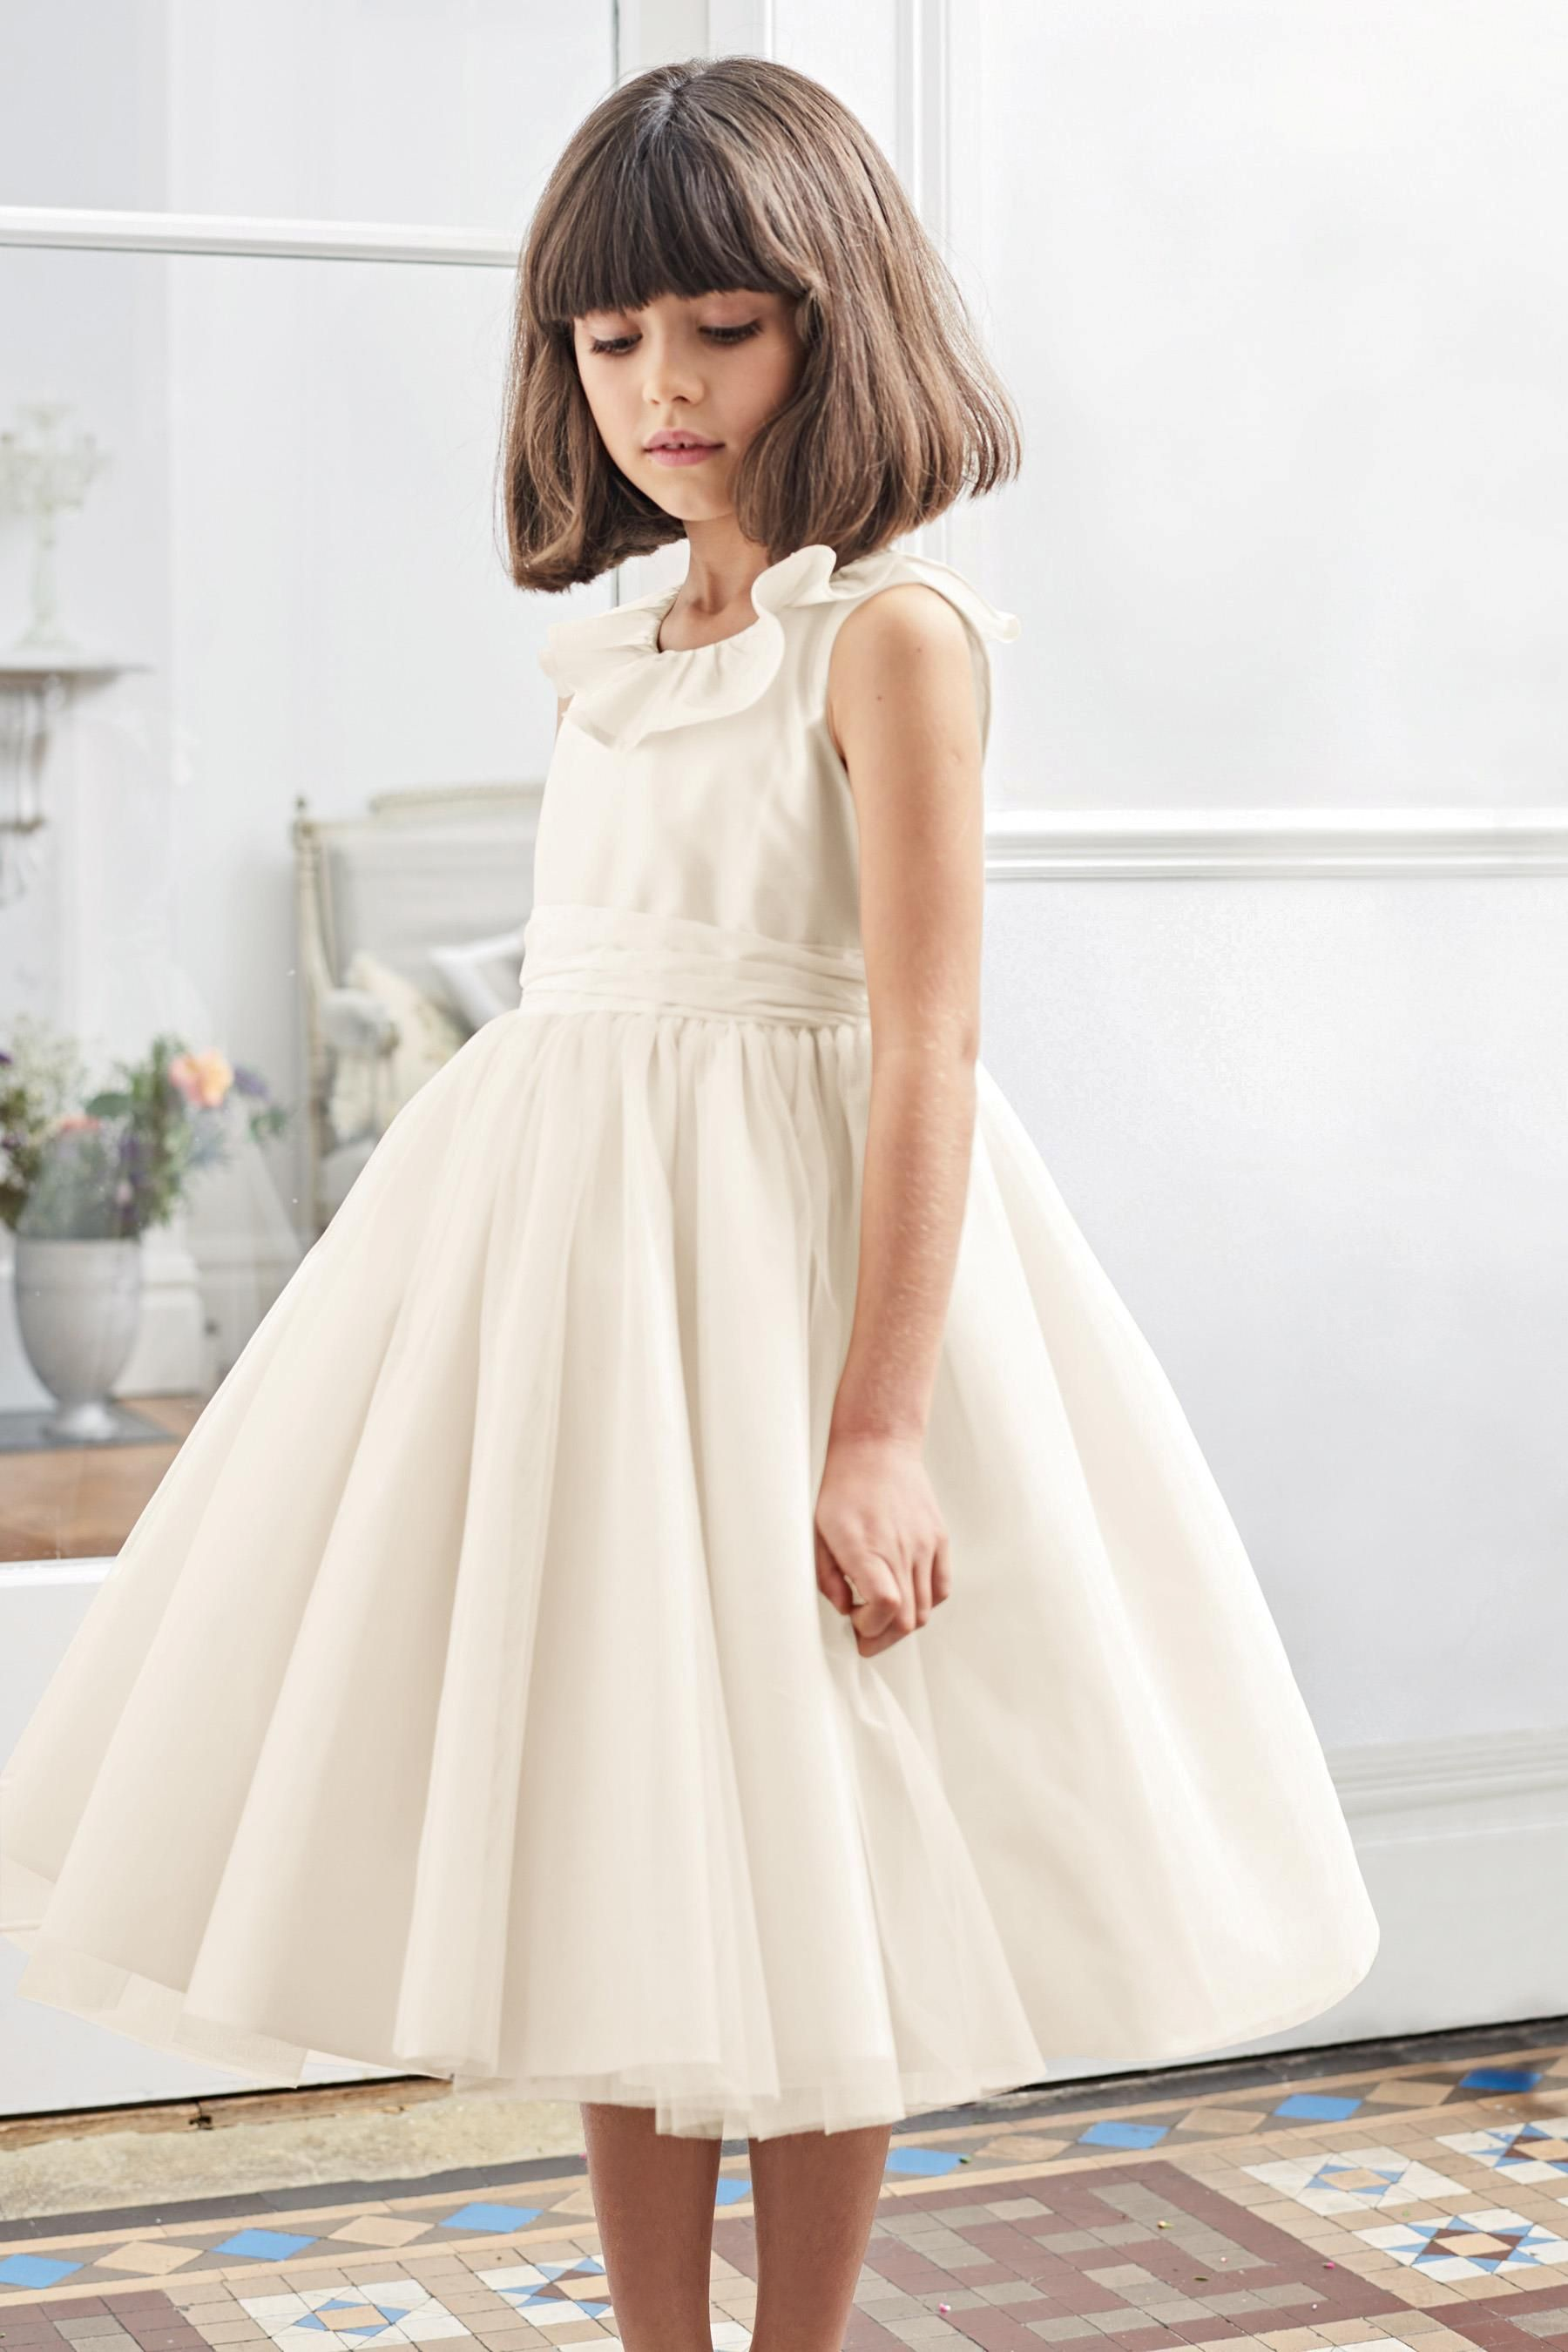 Buy ivory bridesmaid dress 3mths 12yrs from next australia buy ivory bridesmaid dress 3mths 12yrs from next australia ombrellifo Images